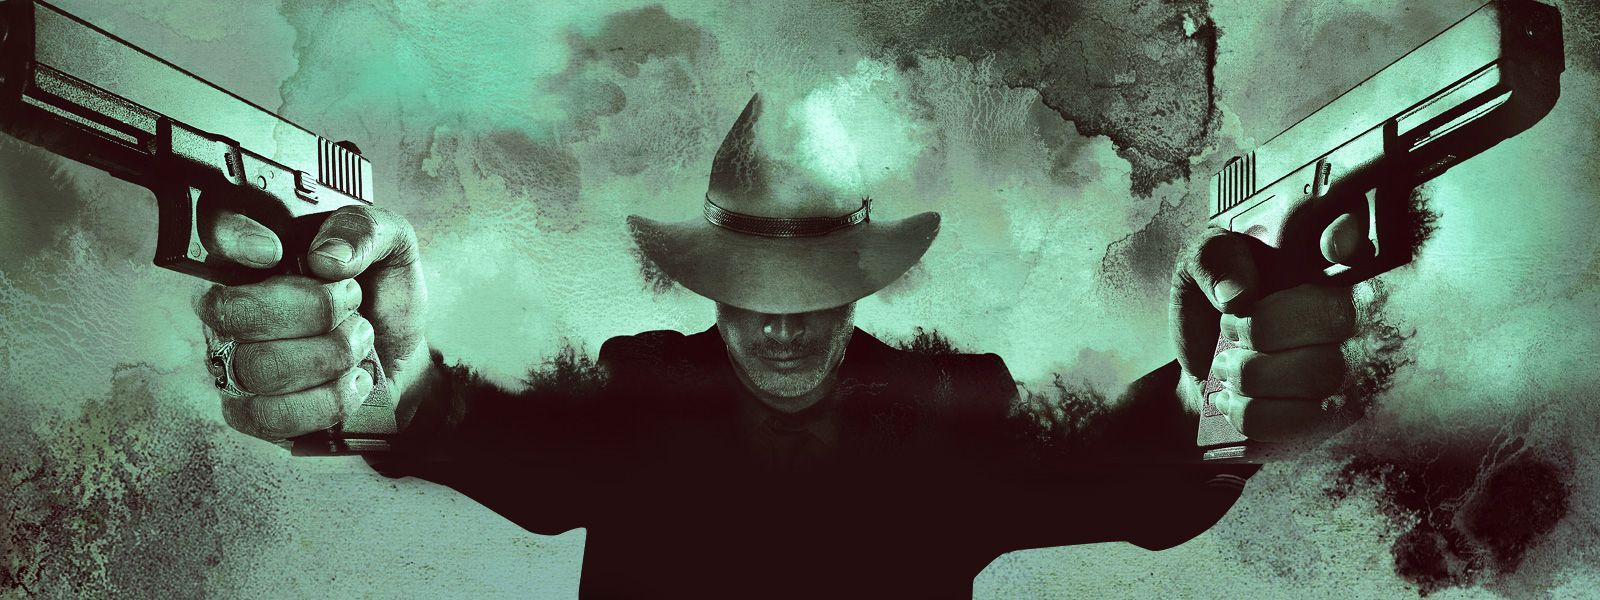 justified-raylan-givens-pistolas-timothy-olyphant